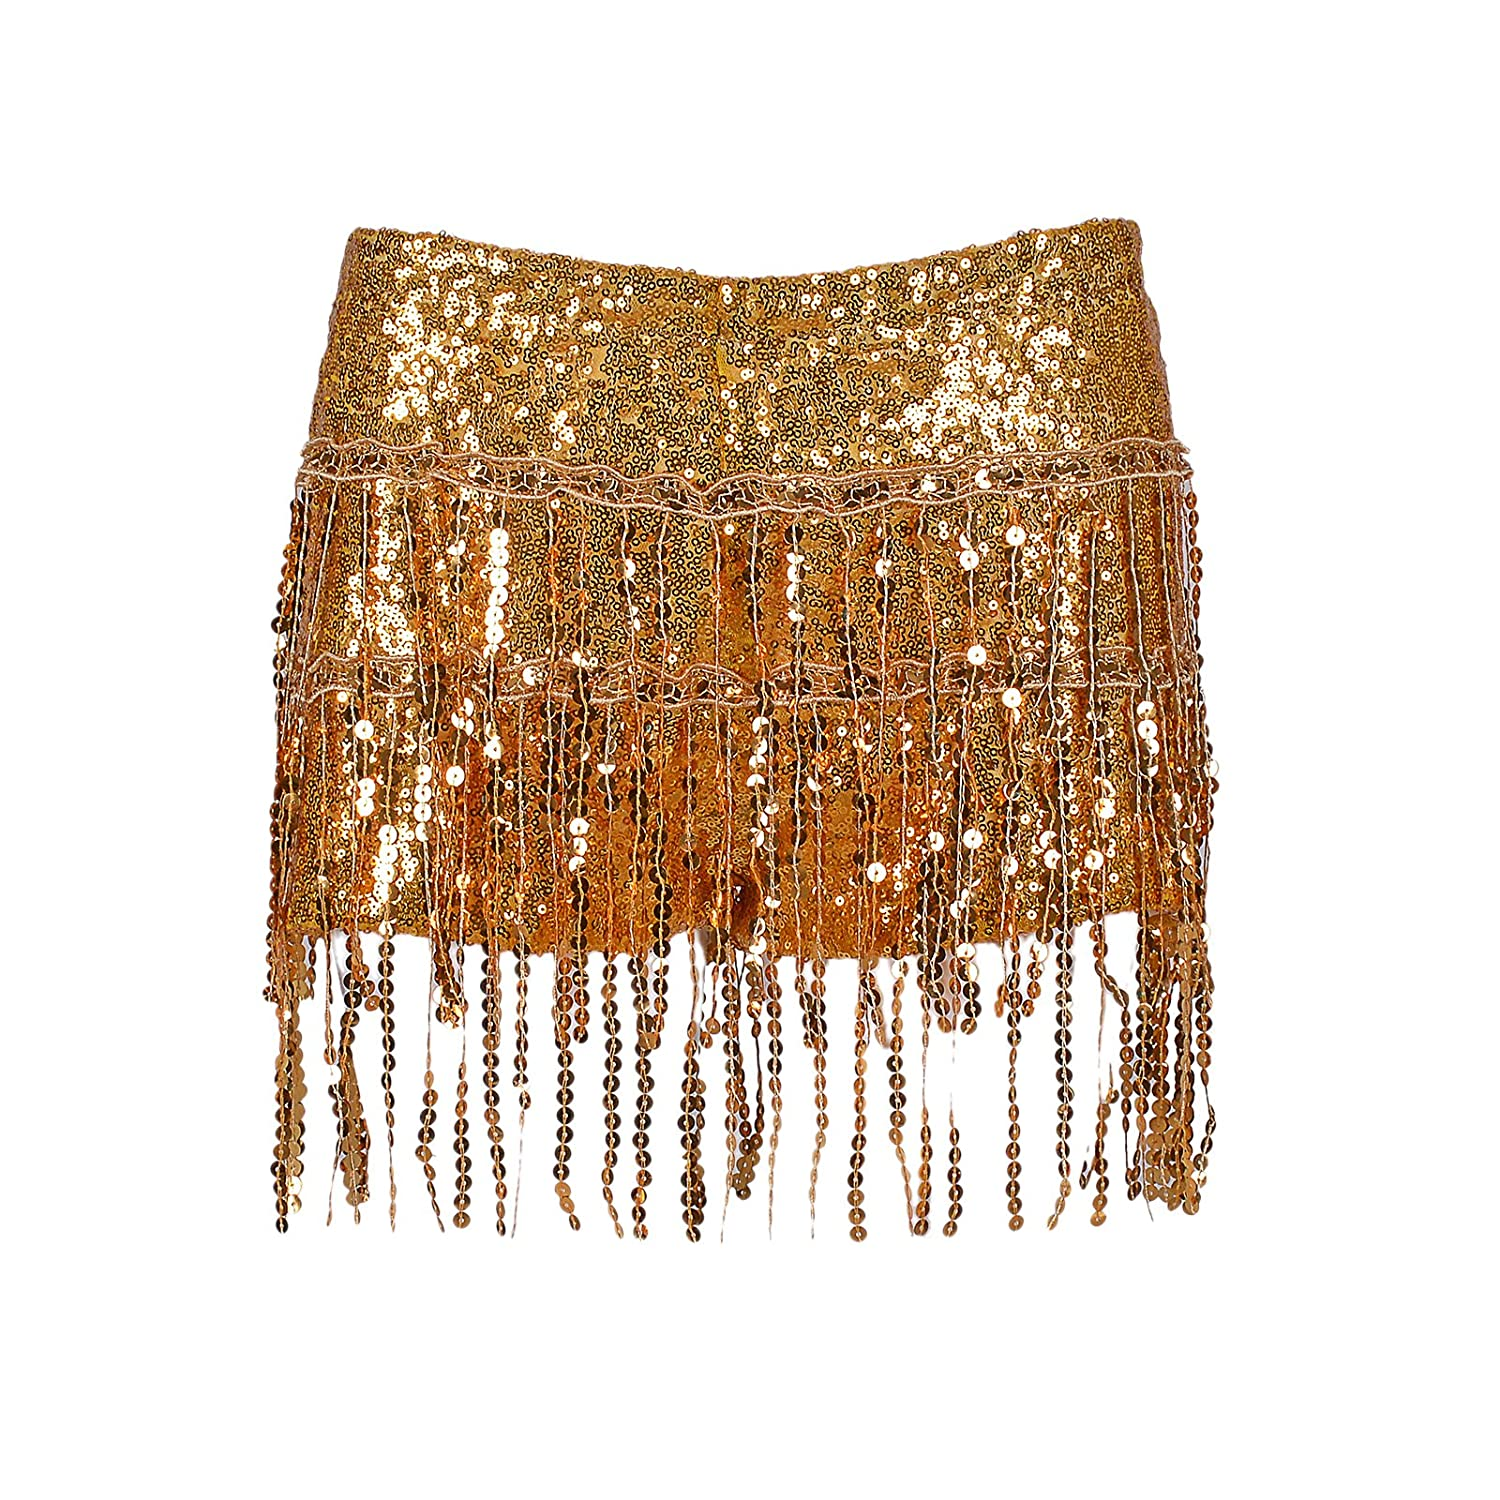 BFD One Ladies Girls Sequin Tassel Skirt (with Shorts Underneath). Sizes 6 8 10 and 12 Silver Gold Turquoise Hand Wash in Cold Water Ideal for Dance Performance Festival Summer Party